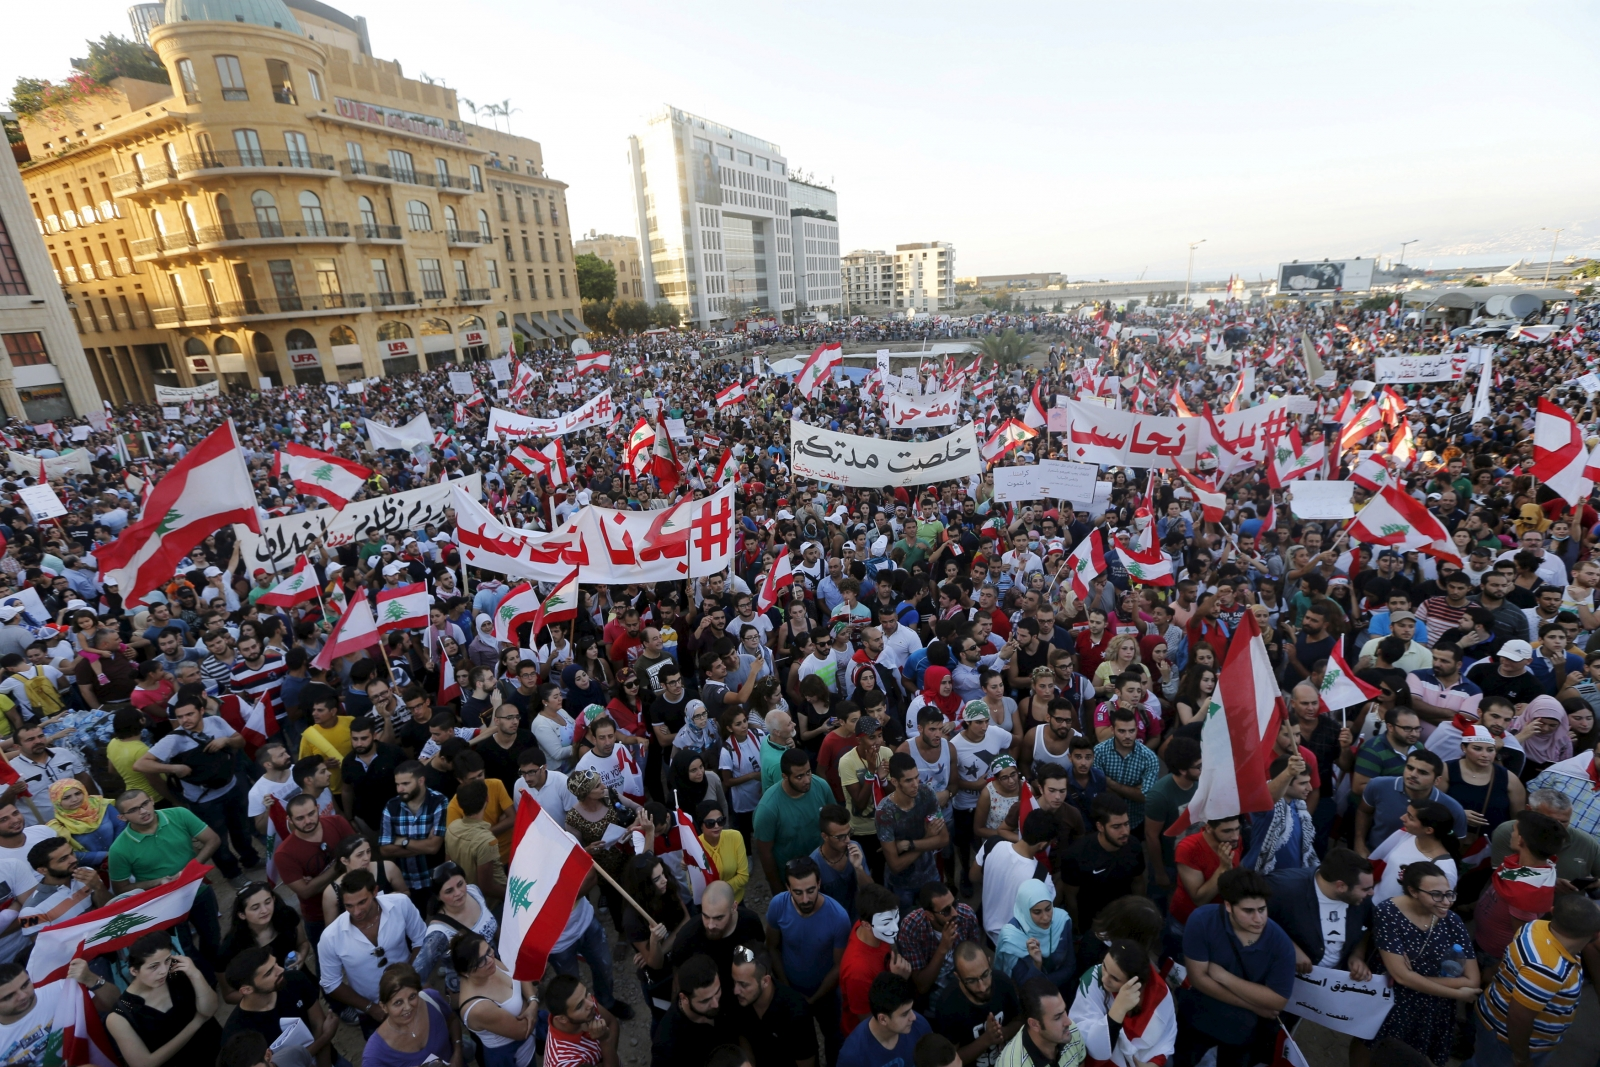 Lebanon You Stink protests